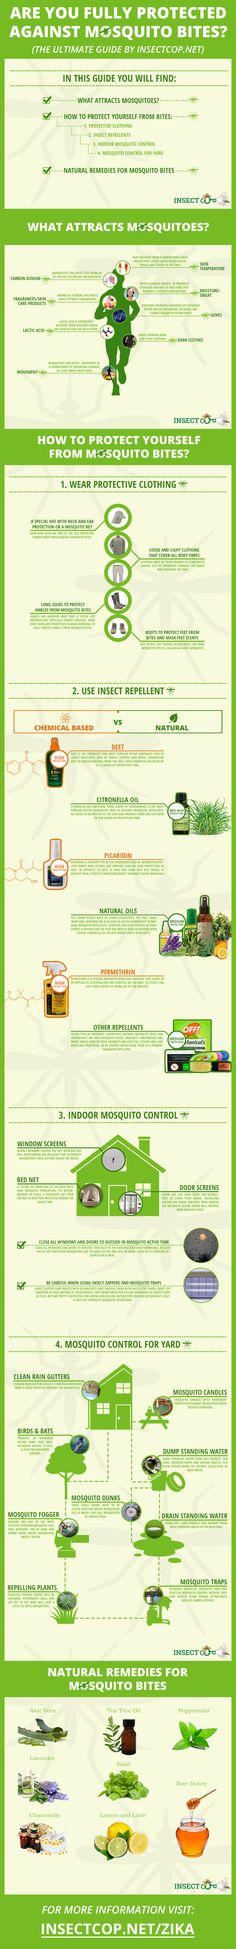 The social Super Bowl 2013 – the winners and losers [infographic] Best Mosquito Repellent, Mosquito Spray, Insect Repellent, Super Bowl, Mosquito Control, Mosquito Protection, Pest Control, Bug Control, Internet Marketing